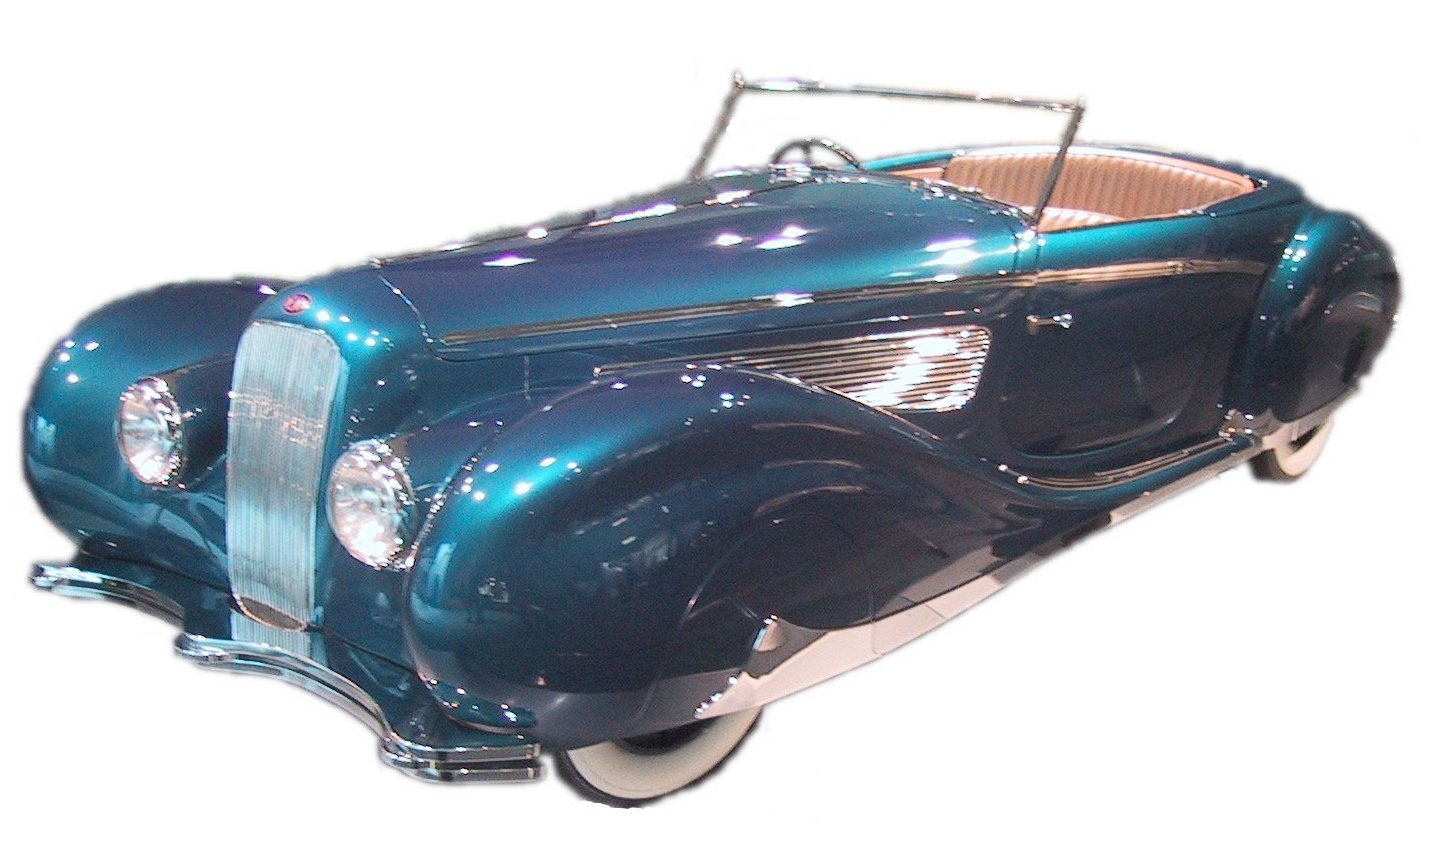 Delage_Type_D8-120_Side